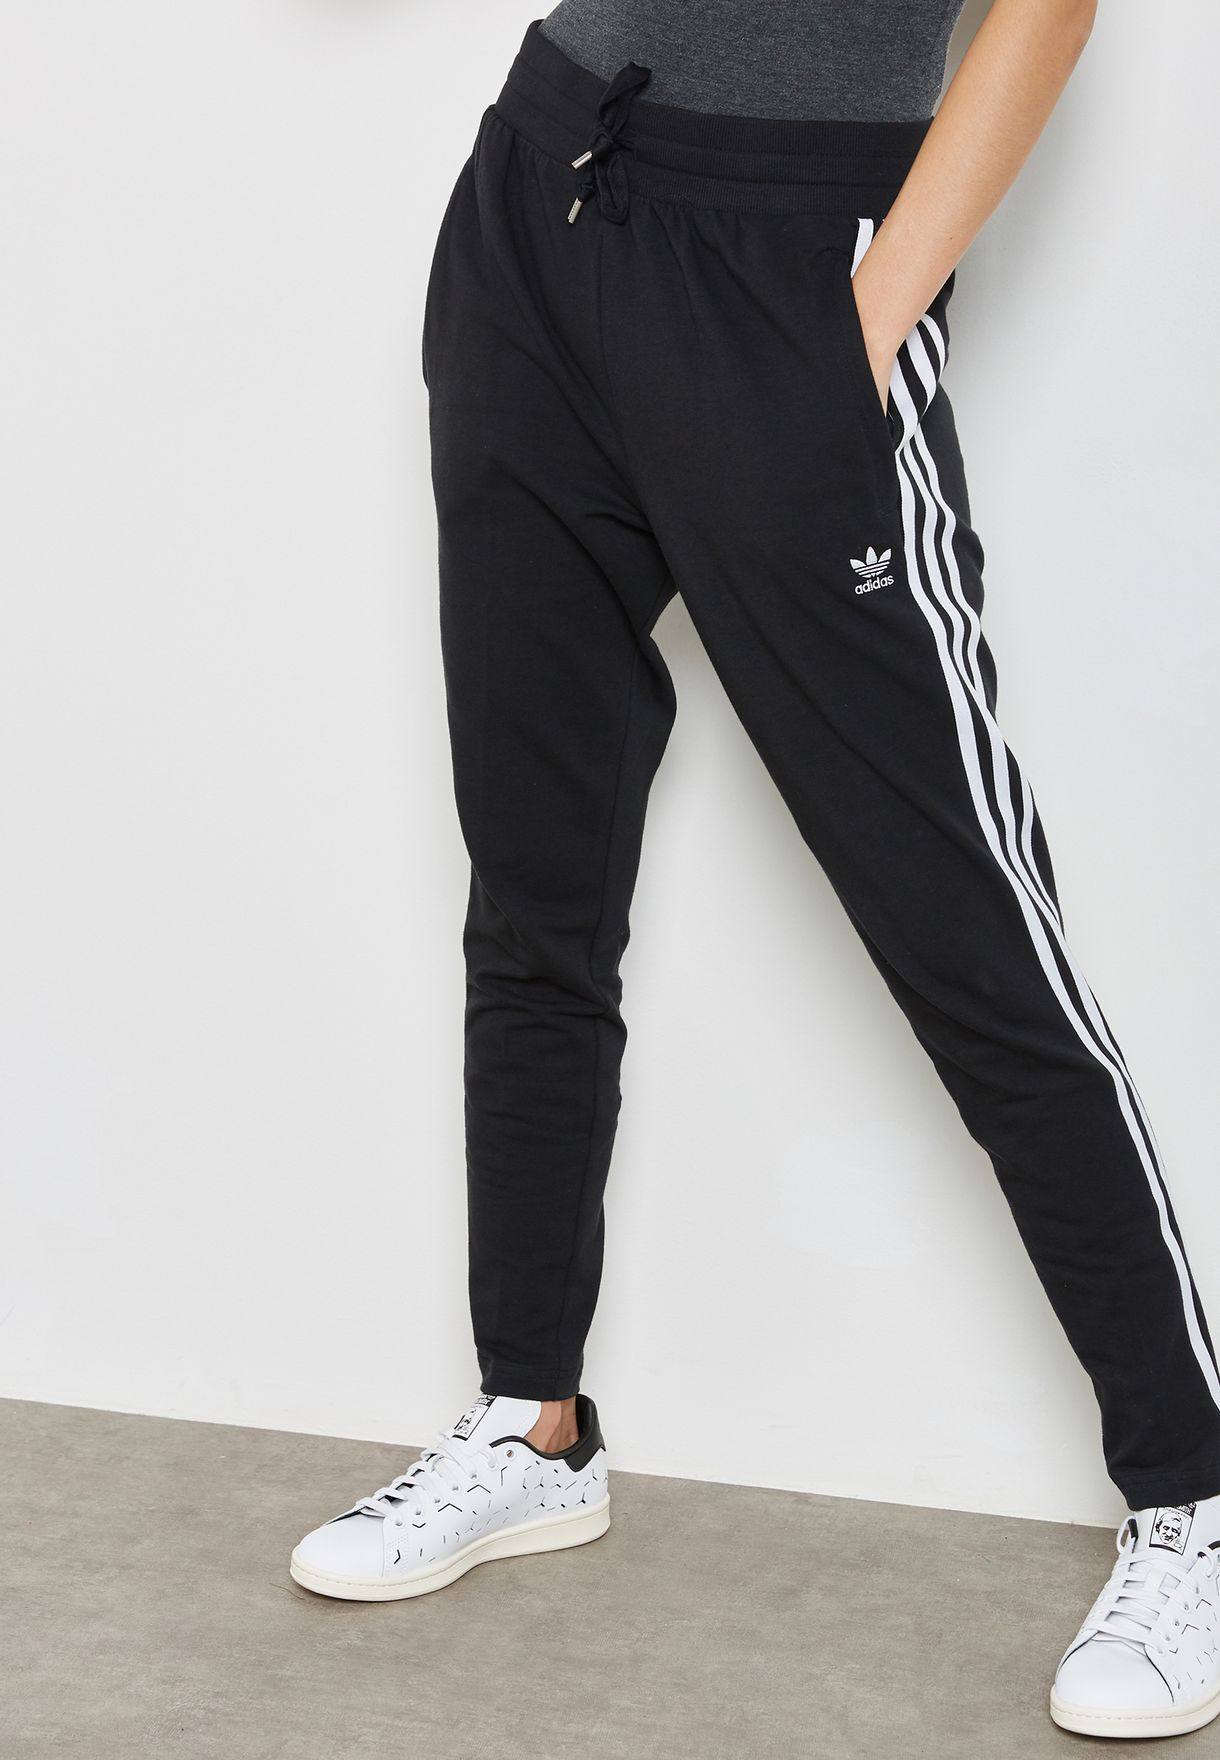 7595e307e19 Shop adidas Originals black 3 Stripe Sweatpants CY7479 for Women in ...